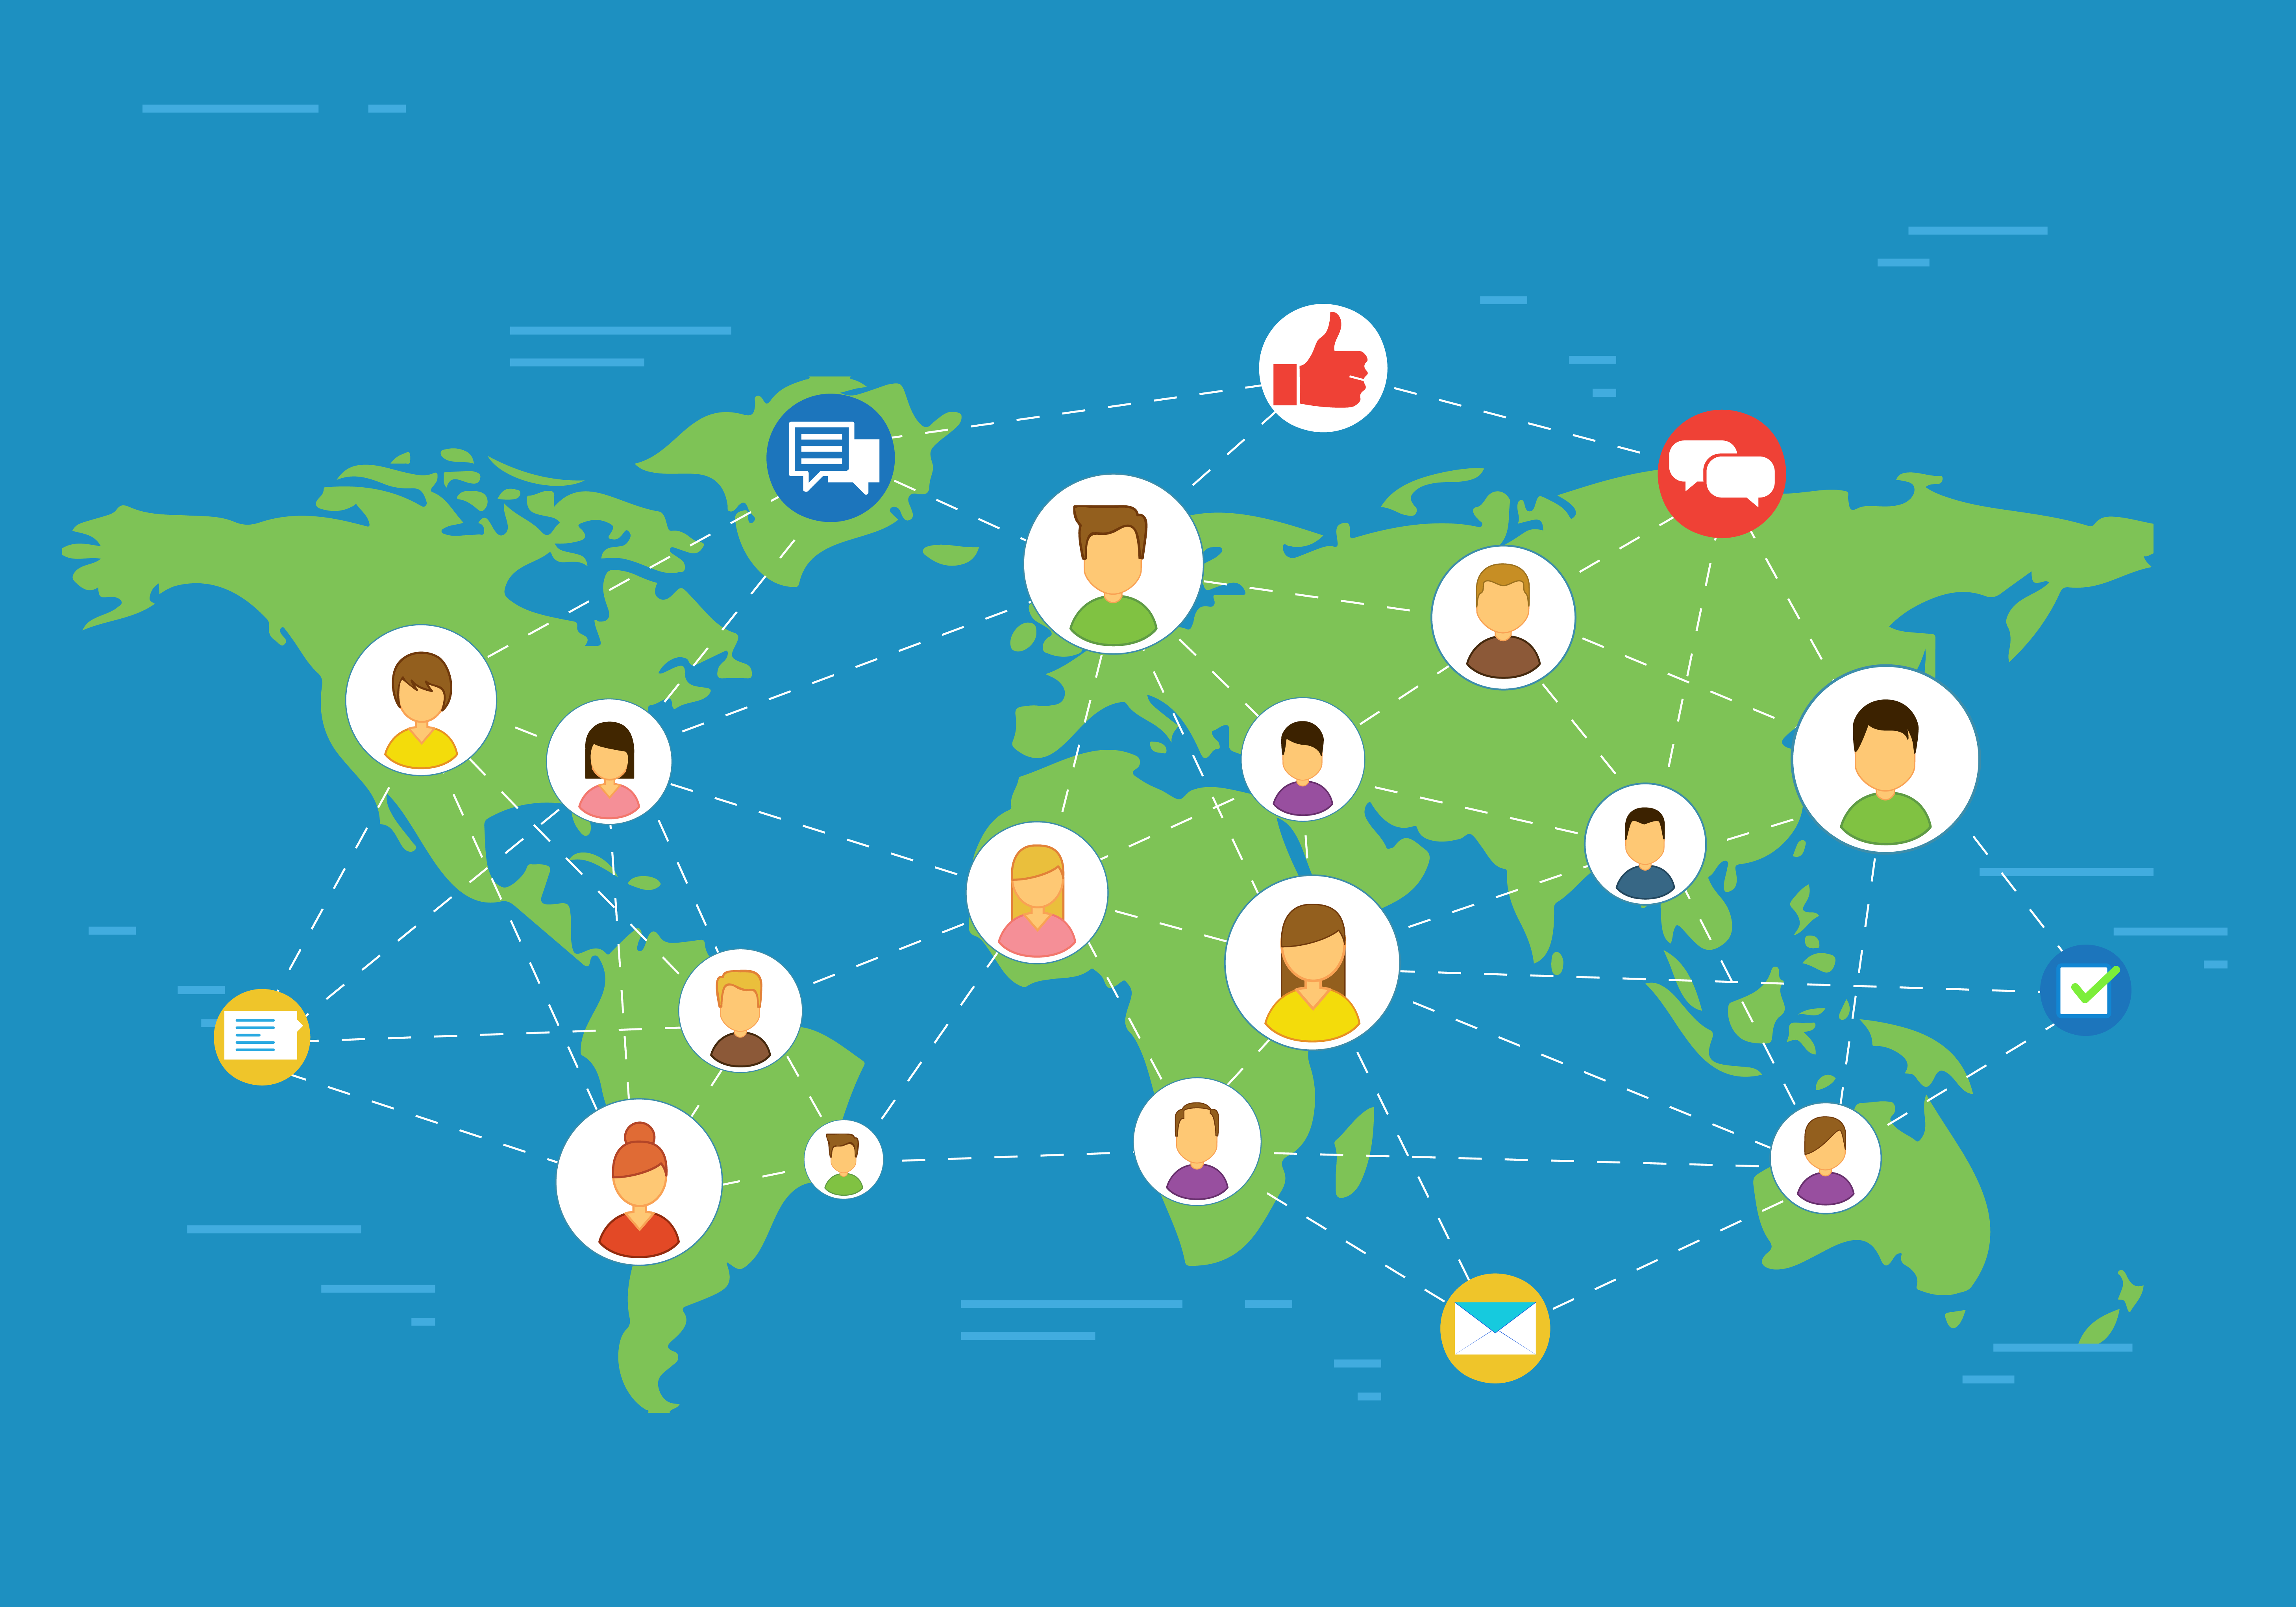 People connected through digital marketing